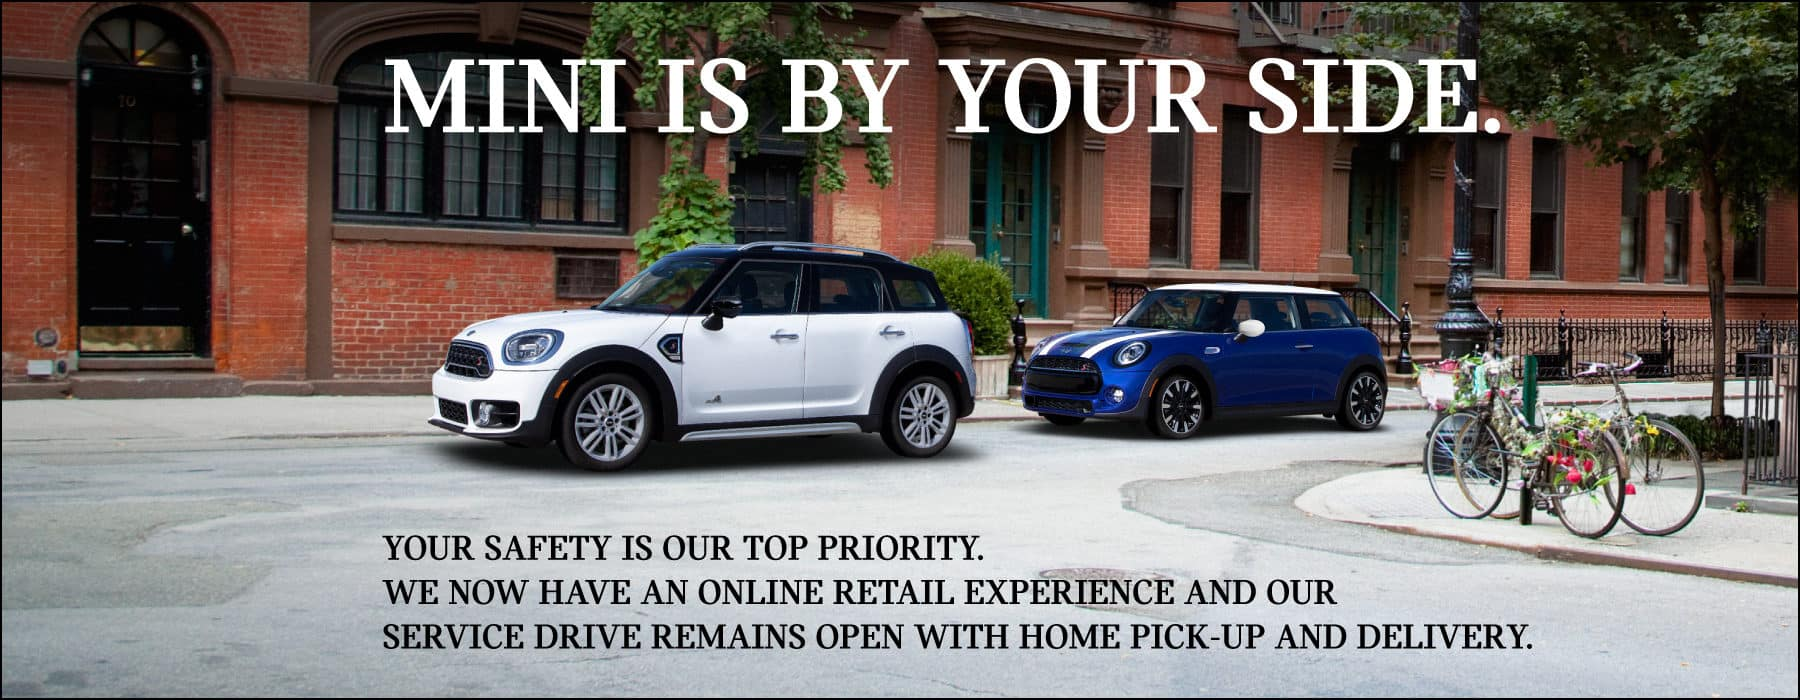 MINI if by your side. Your safety is our top priority. We now have an online retail experience and our service drive remains open with home pick-up and delivery. White MINI Cooper S Countryman ALL4 and MINI Cooper S Hardtop 2 door parked outisde residential buildings.